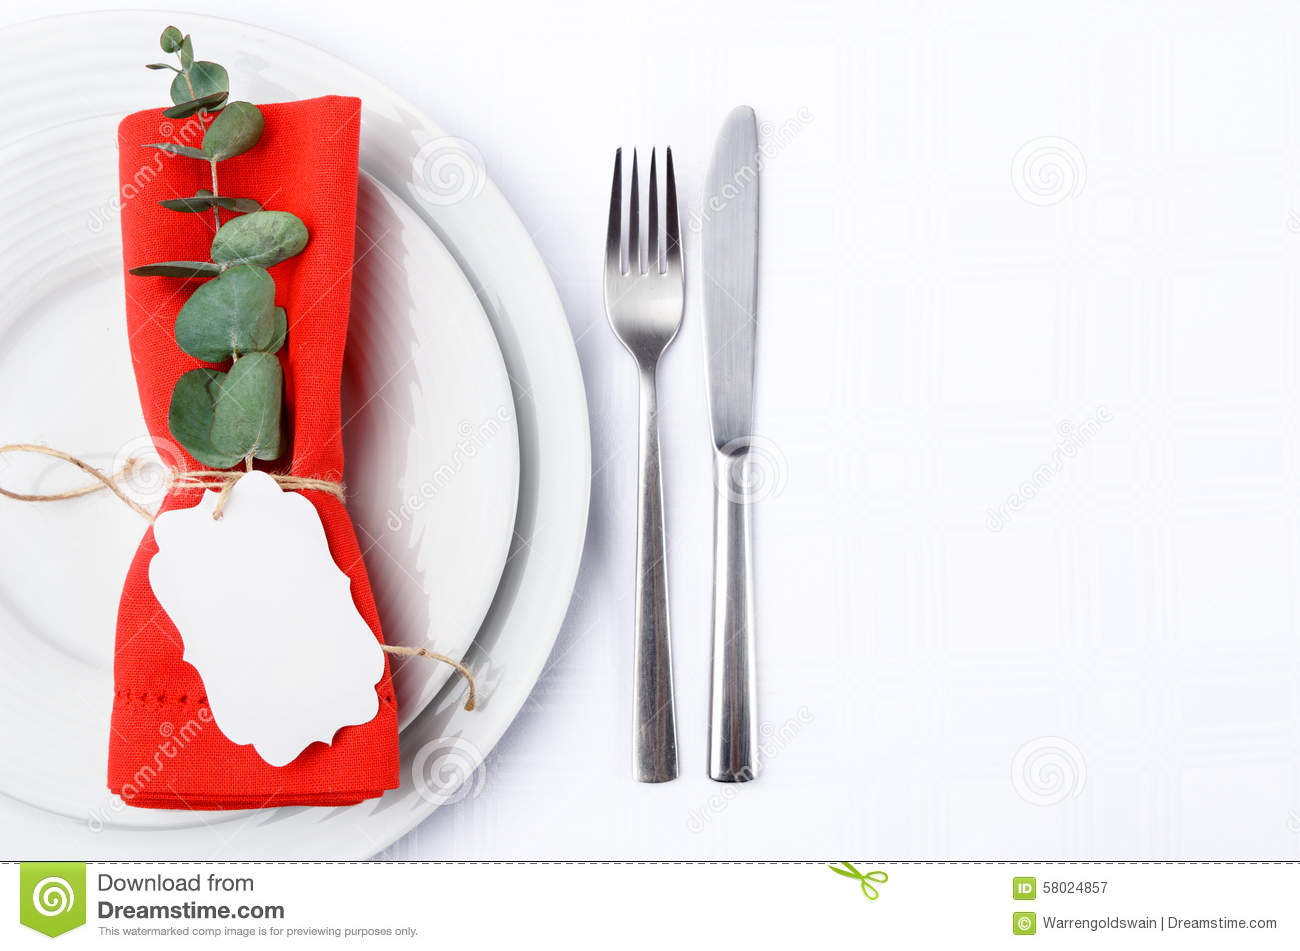 Christmas dinner cutlery with white plates  sc 1 st  Dreamstime.com & Christmas Dinner Cutlery With White Plates Stock Image - Image of ...